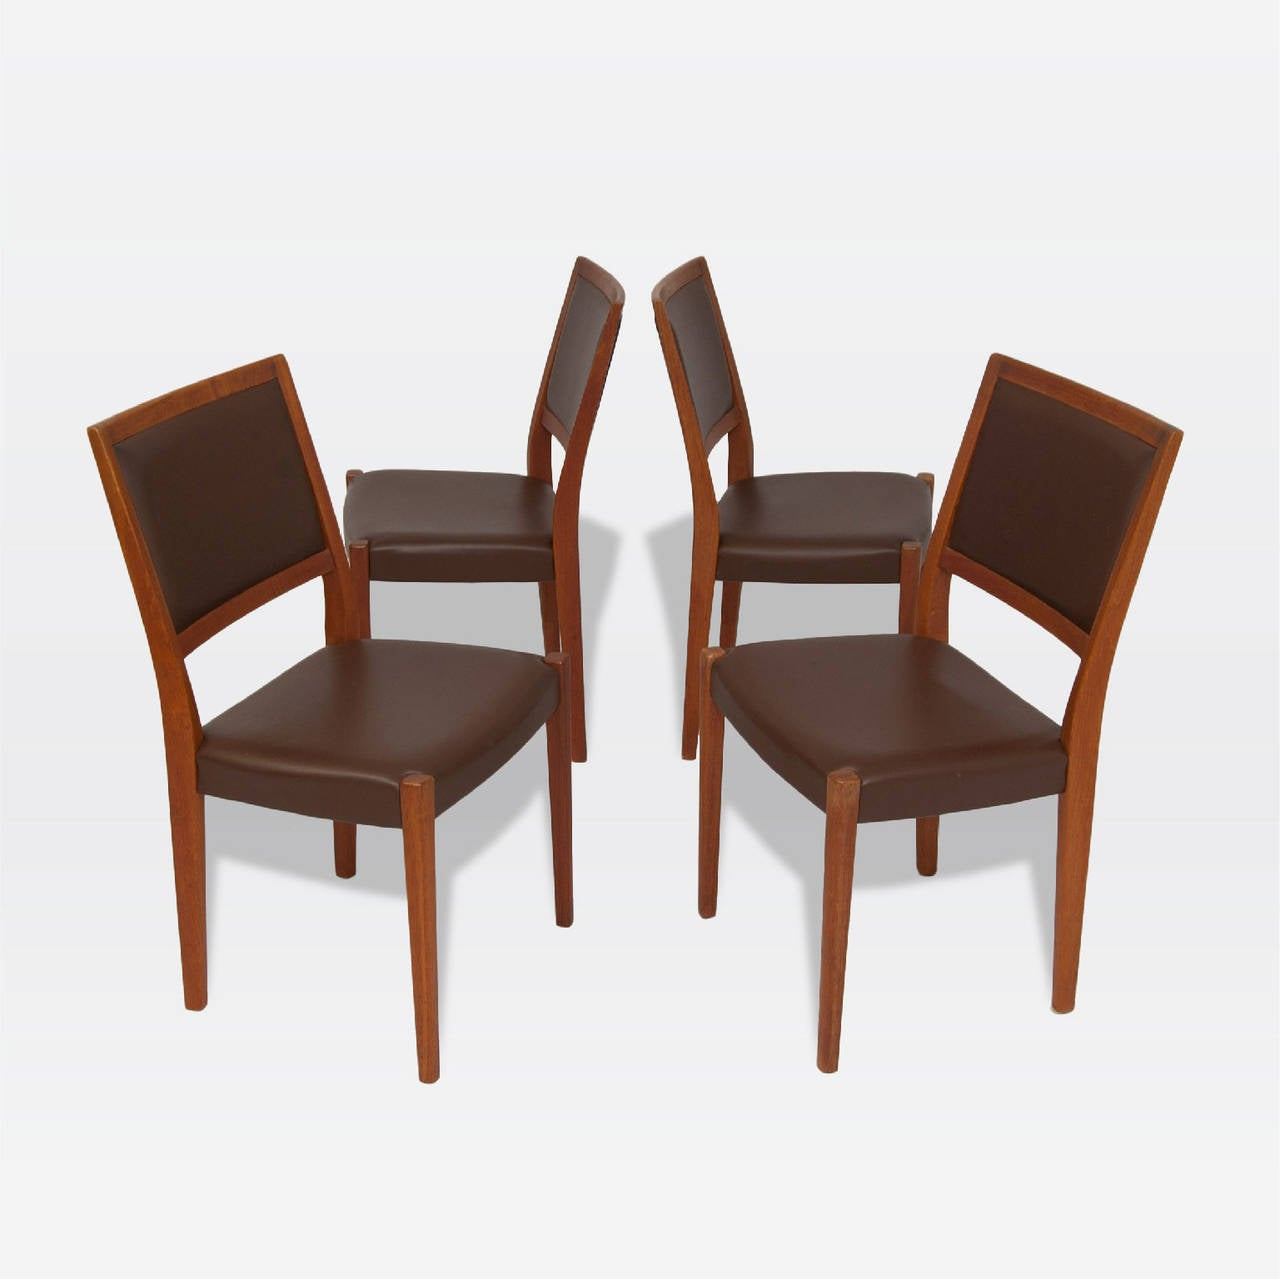 Four teak chairs with vinyl upholstered seats by Svegards Markaryd.